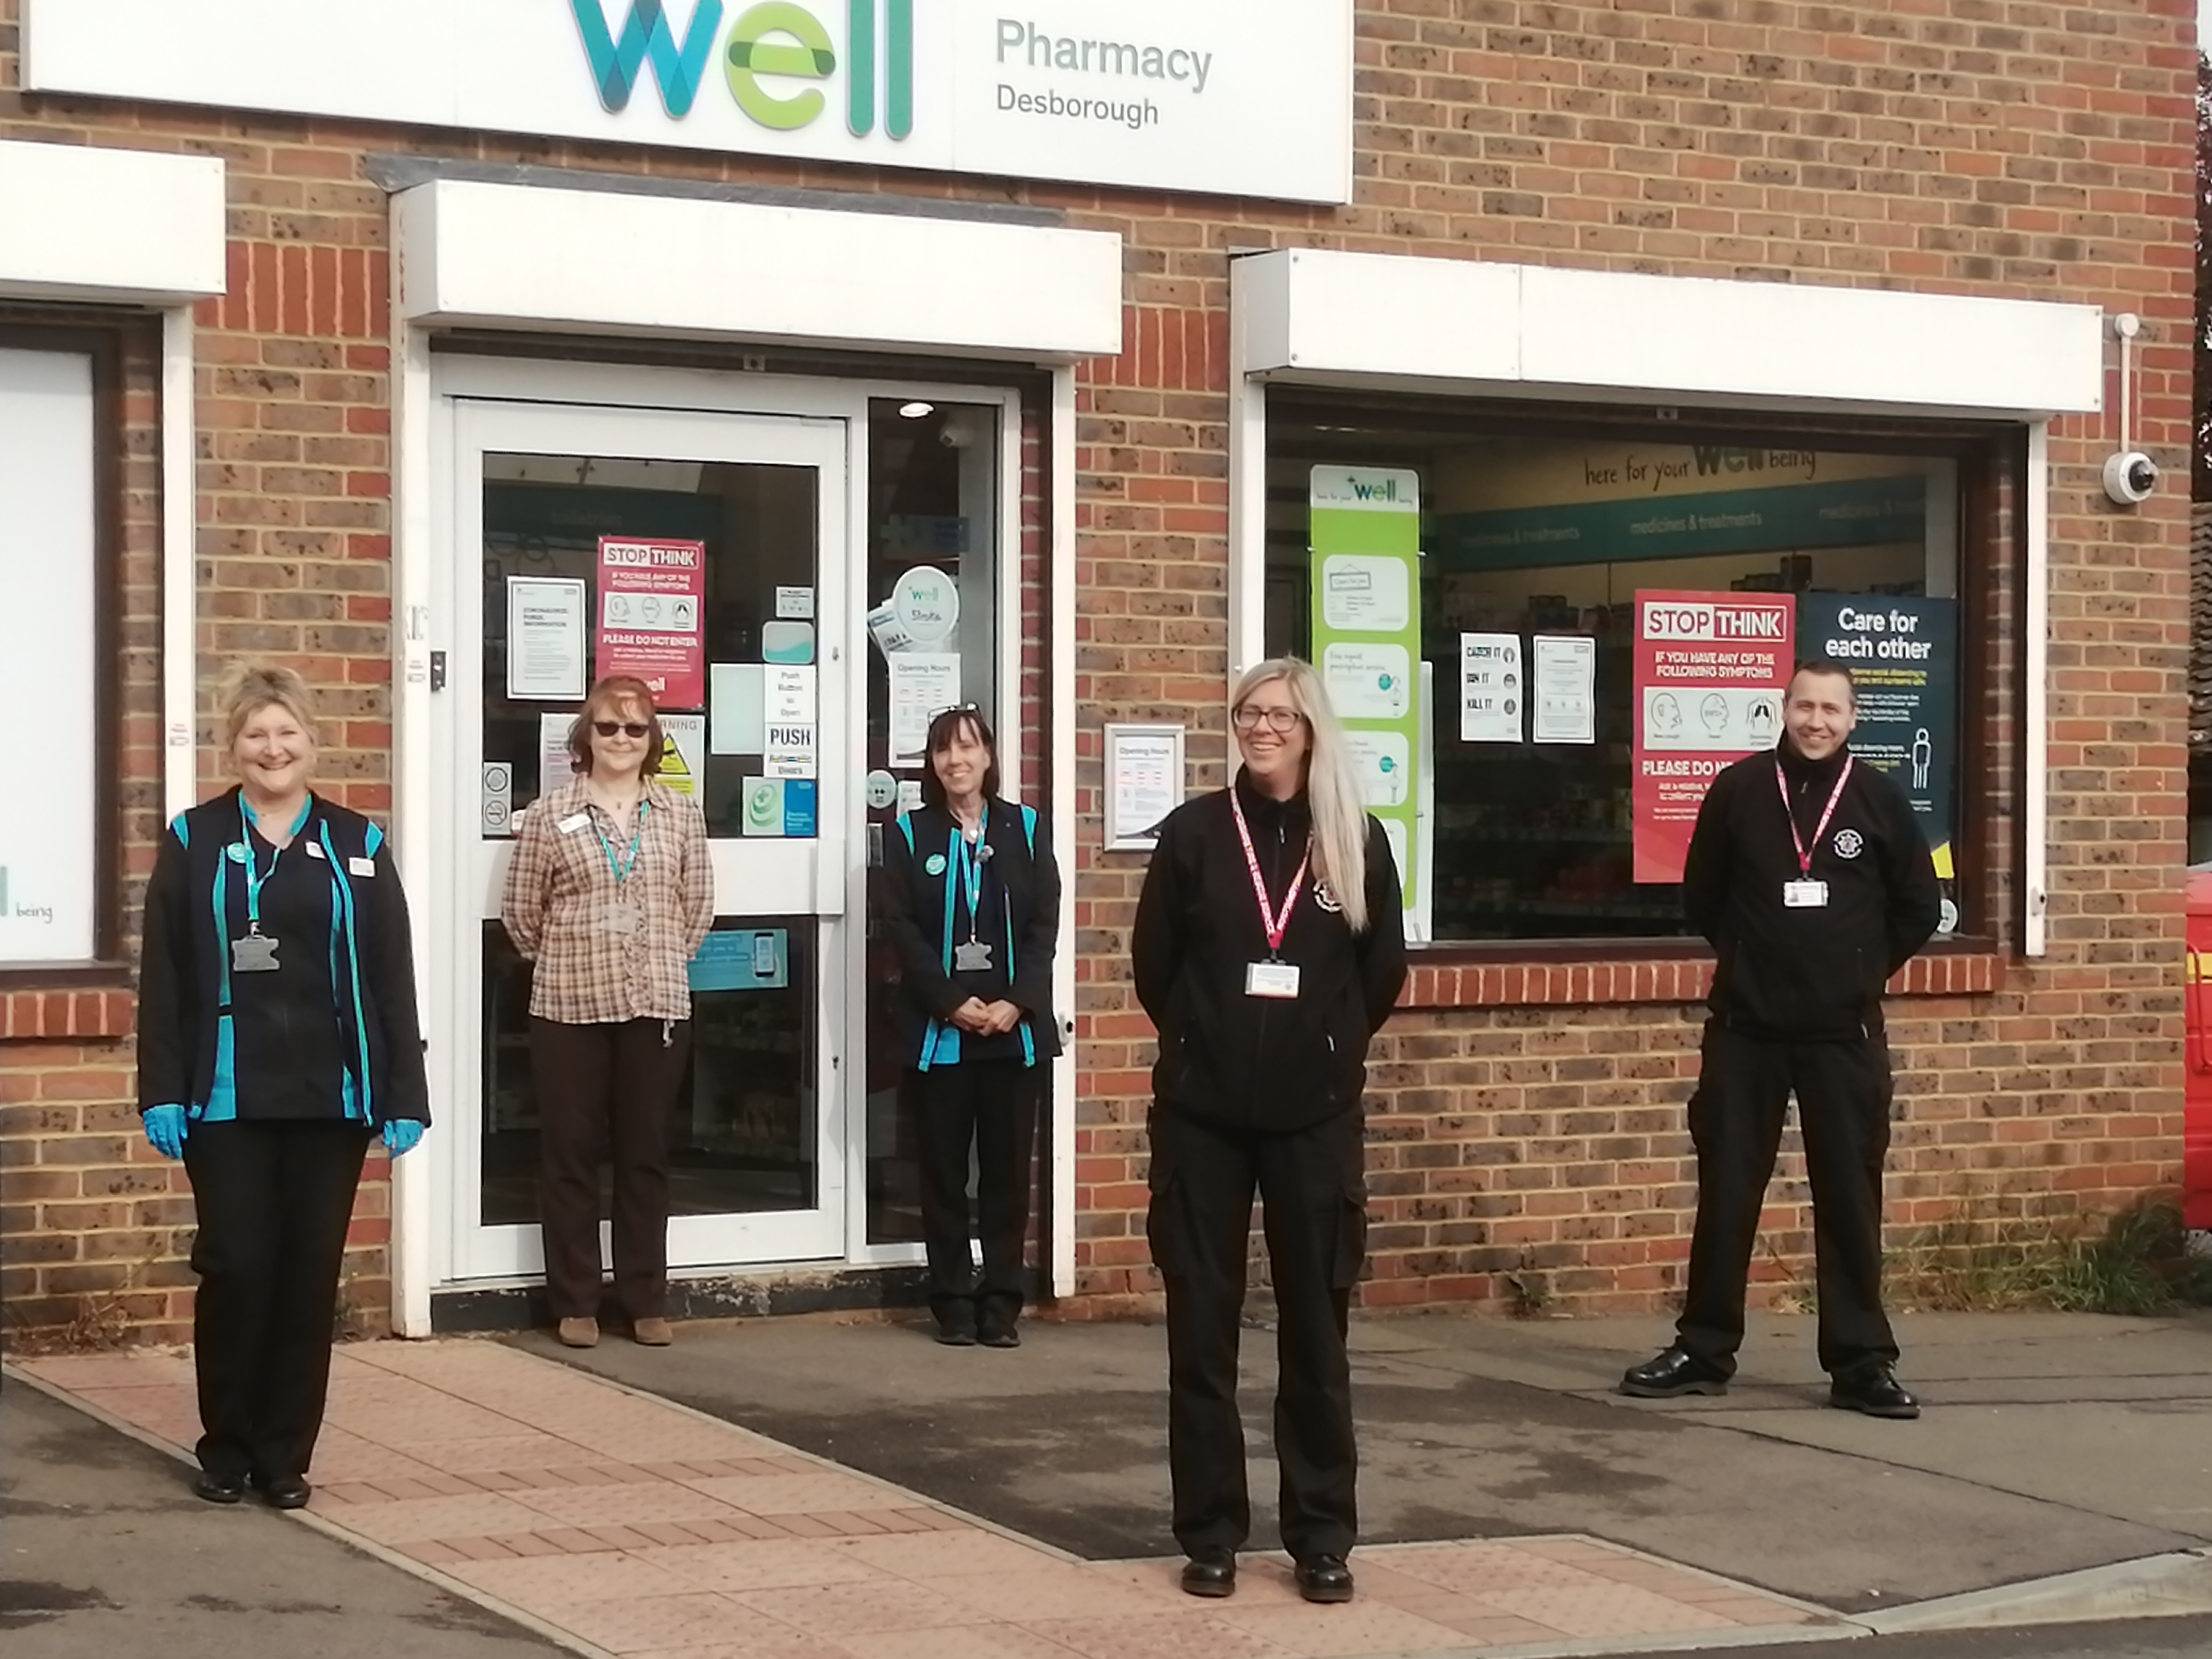 Pharmacy staff in Desborough with two of the on-call firefighters